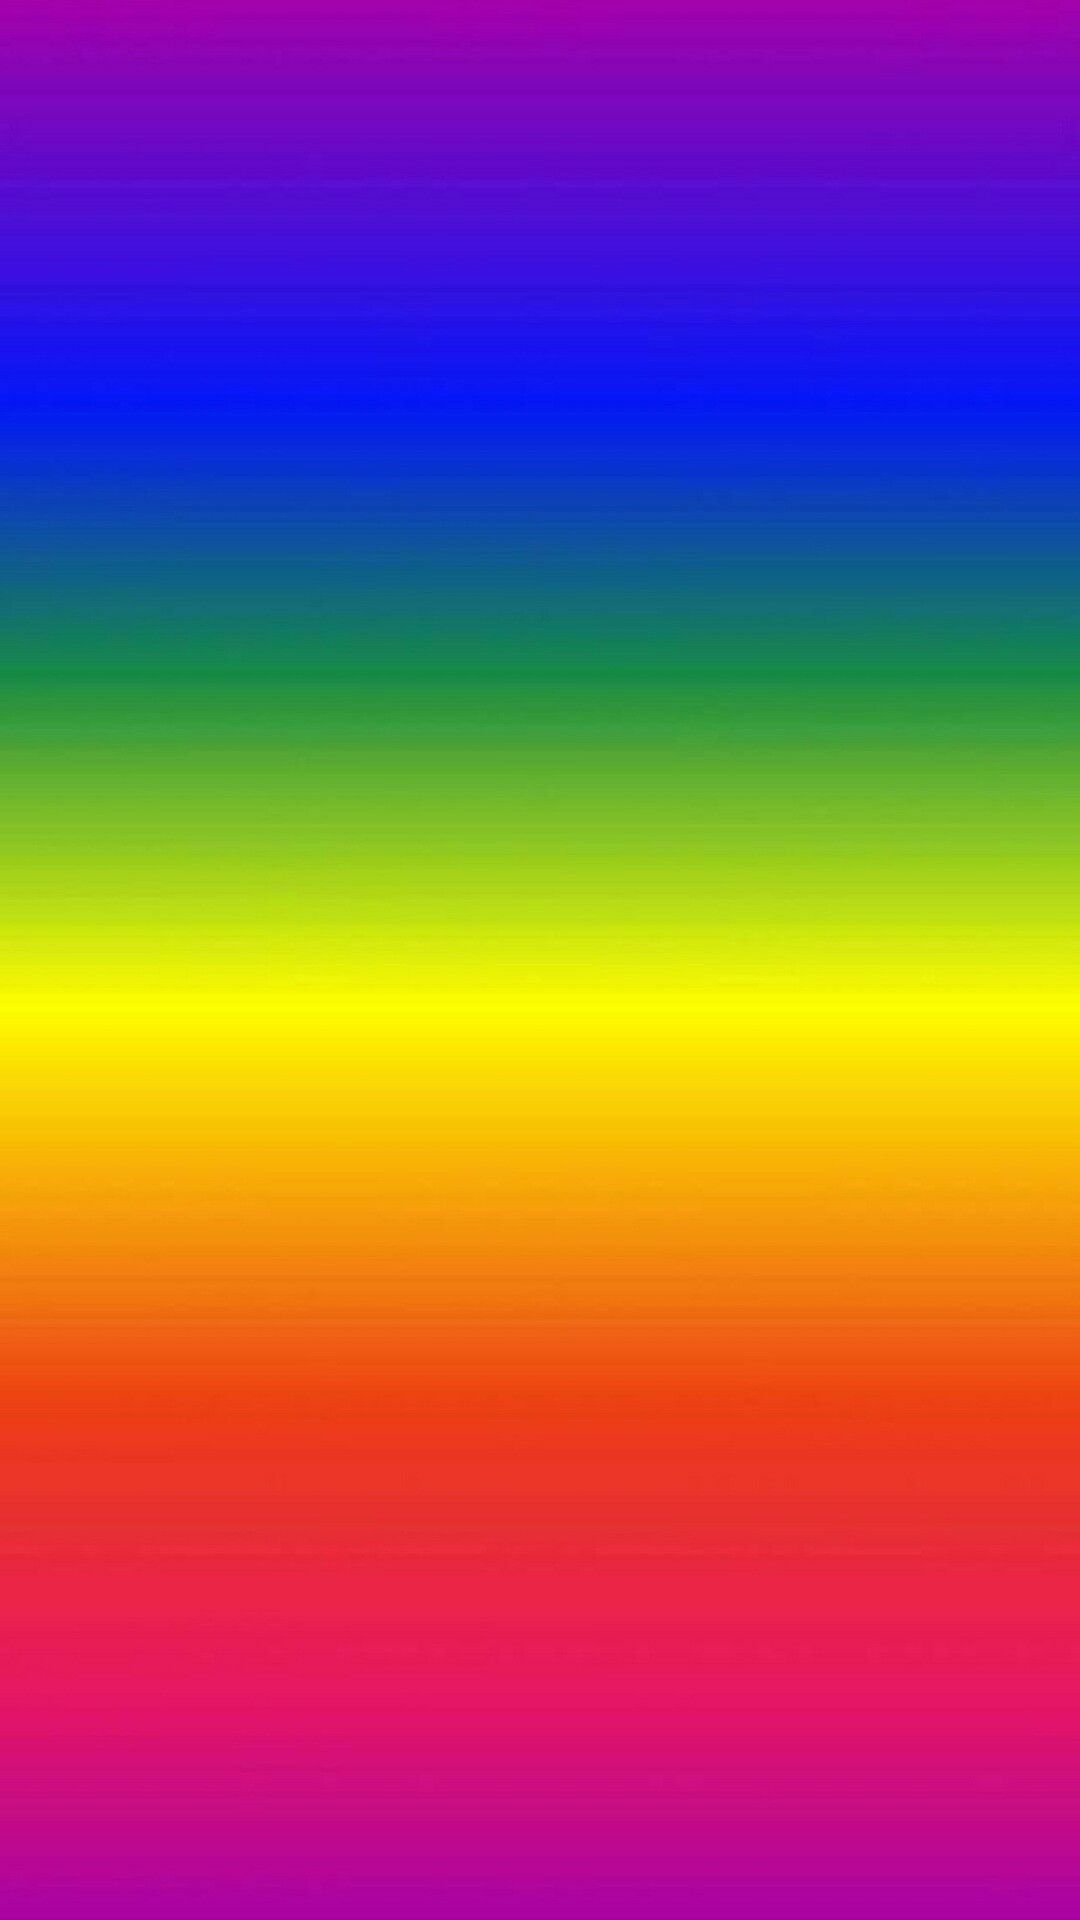 Faded Rainbow With Images Rainbow Wallpaper Aura Colors